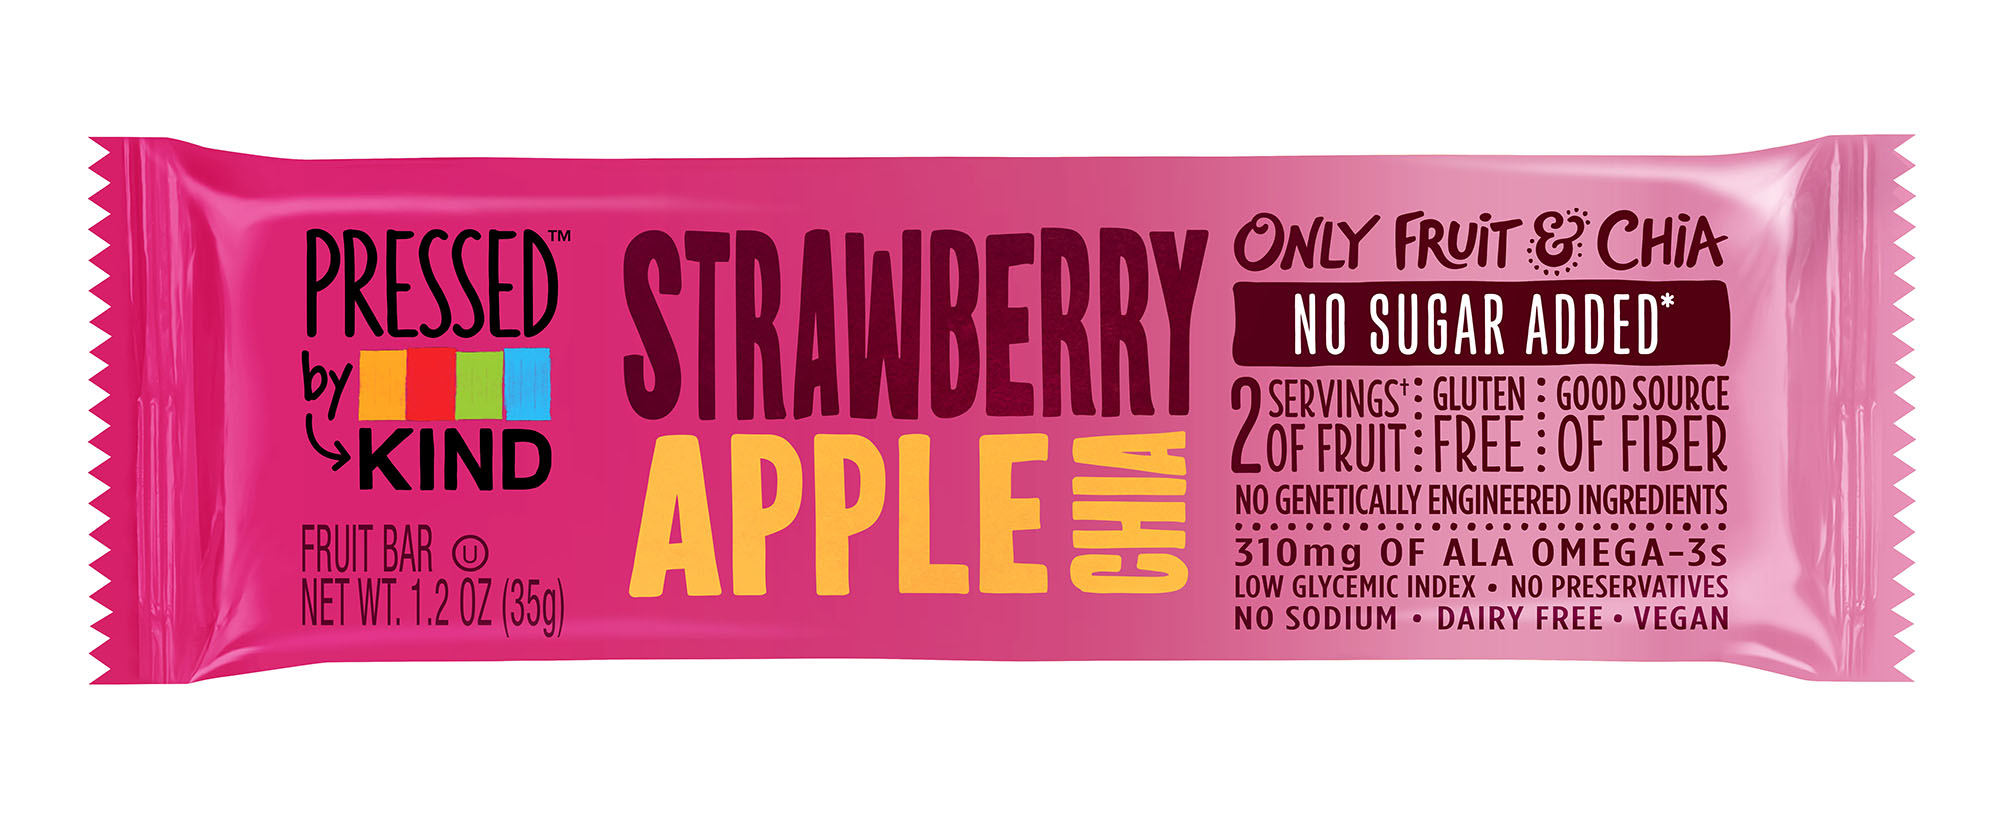 PRESSED BY KIND STRAWBERRY APPLE CHIA BARS